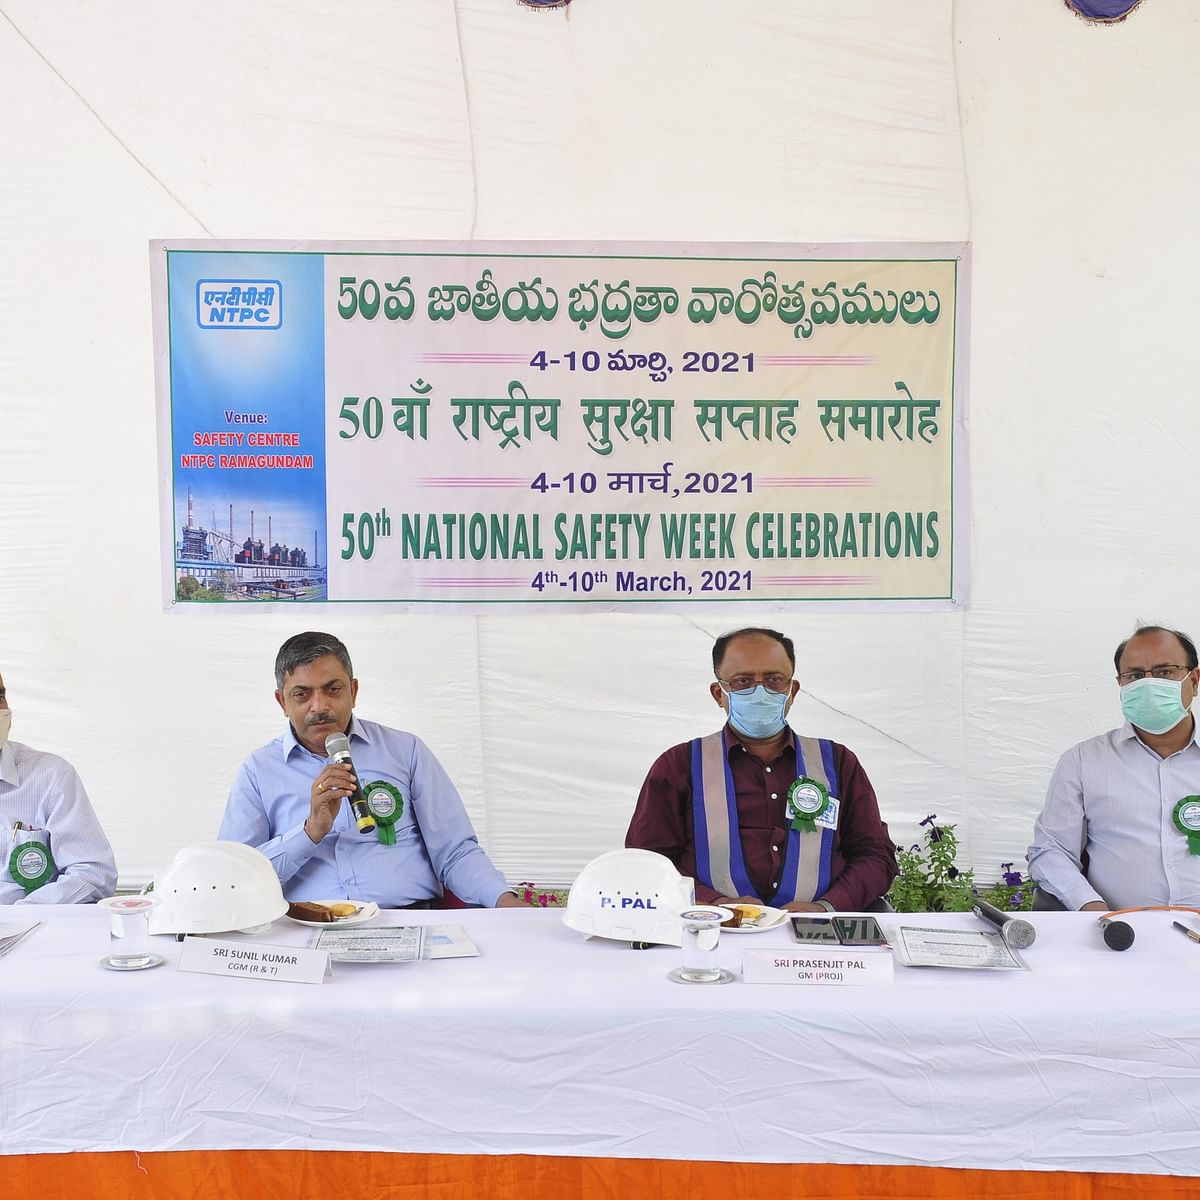 50th National Safety Week celebrations commence at NTPC-Ramagundam